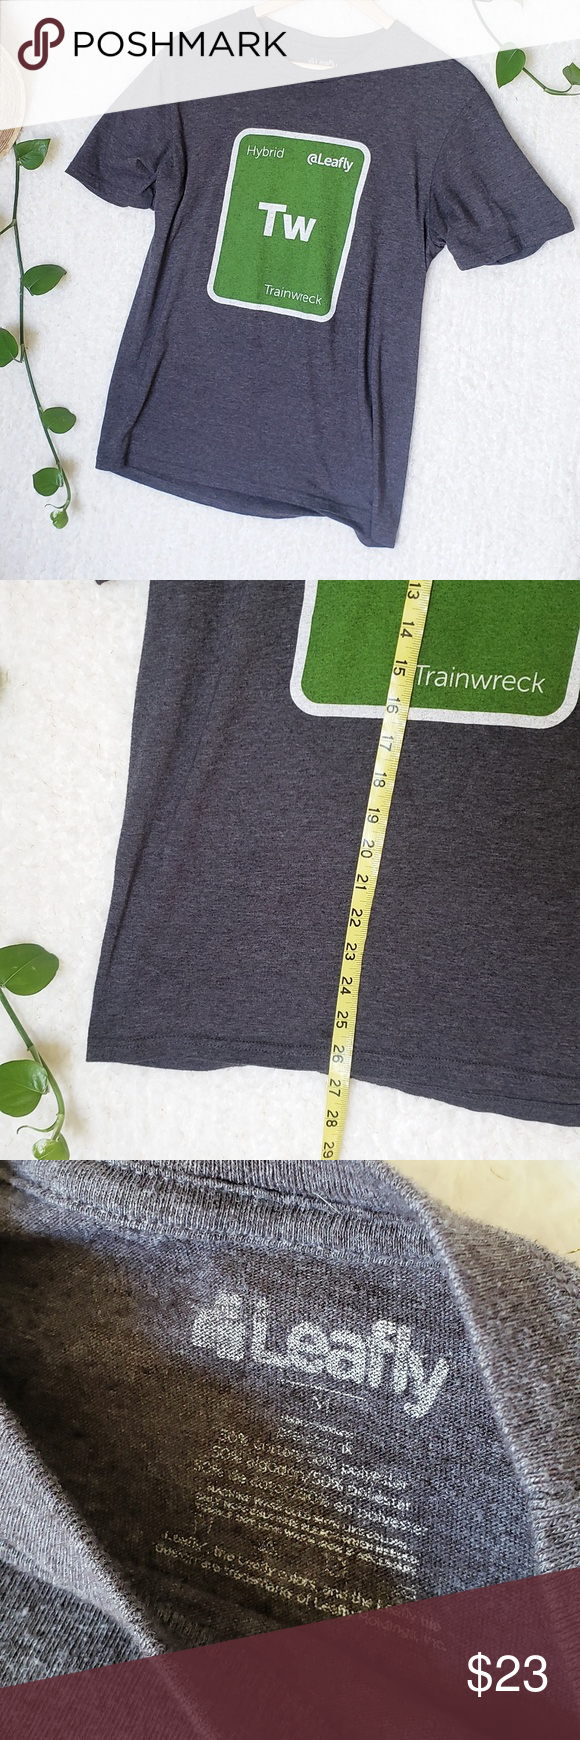 Leafly Trainwreck Promo Exclusive Tee Men's M (With images